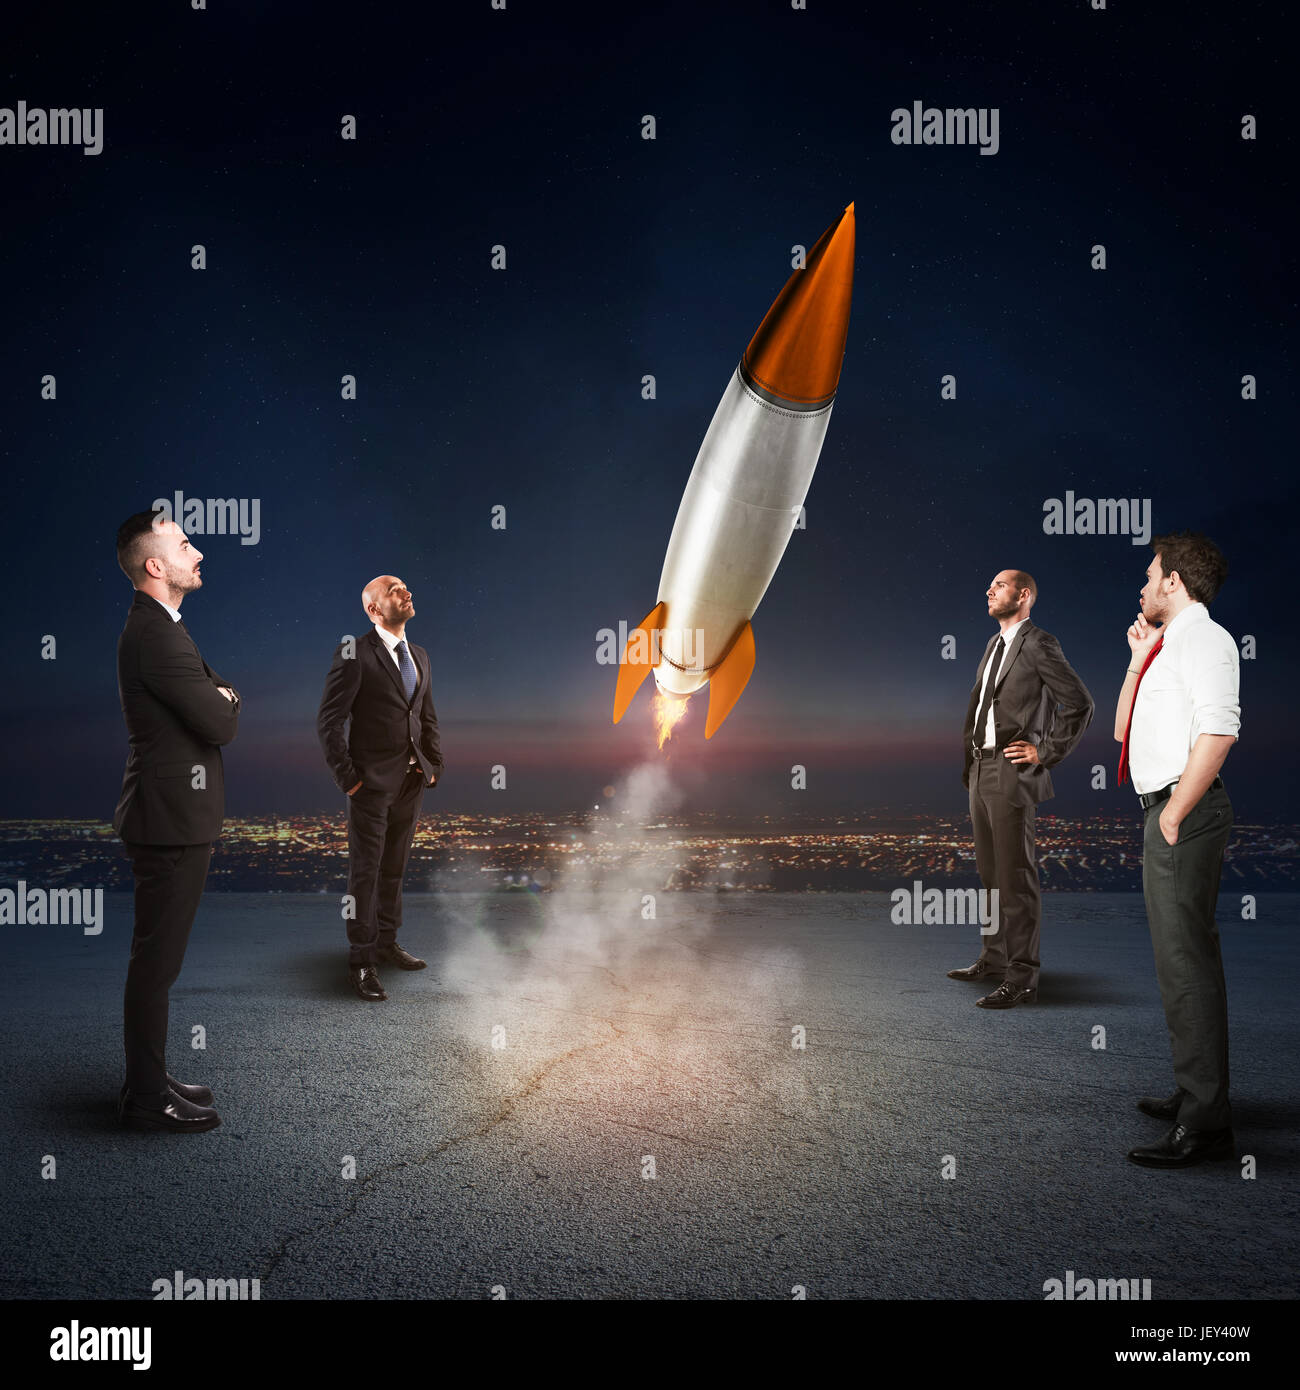 Team of businesspeople looks start a missile. Concept of company startup and new business. 3D Rendering. - Stock Image